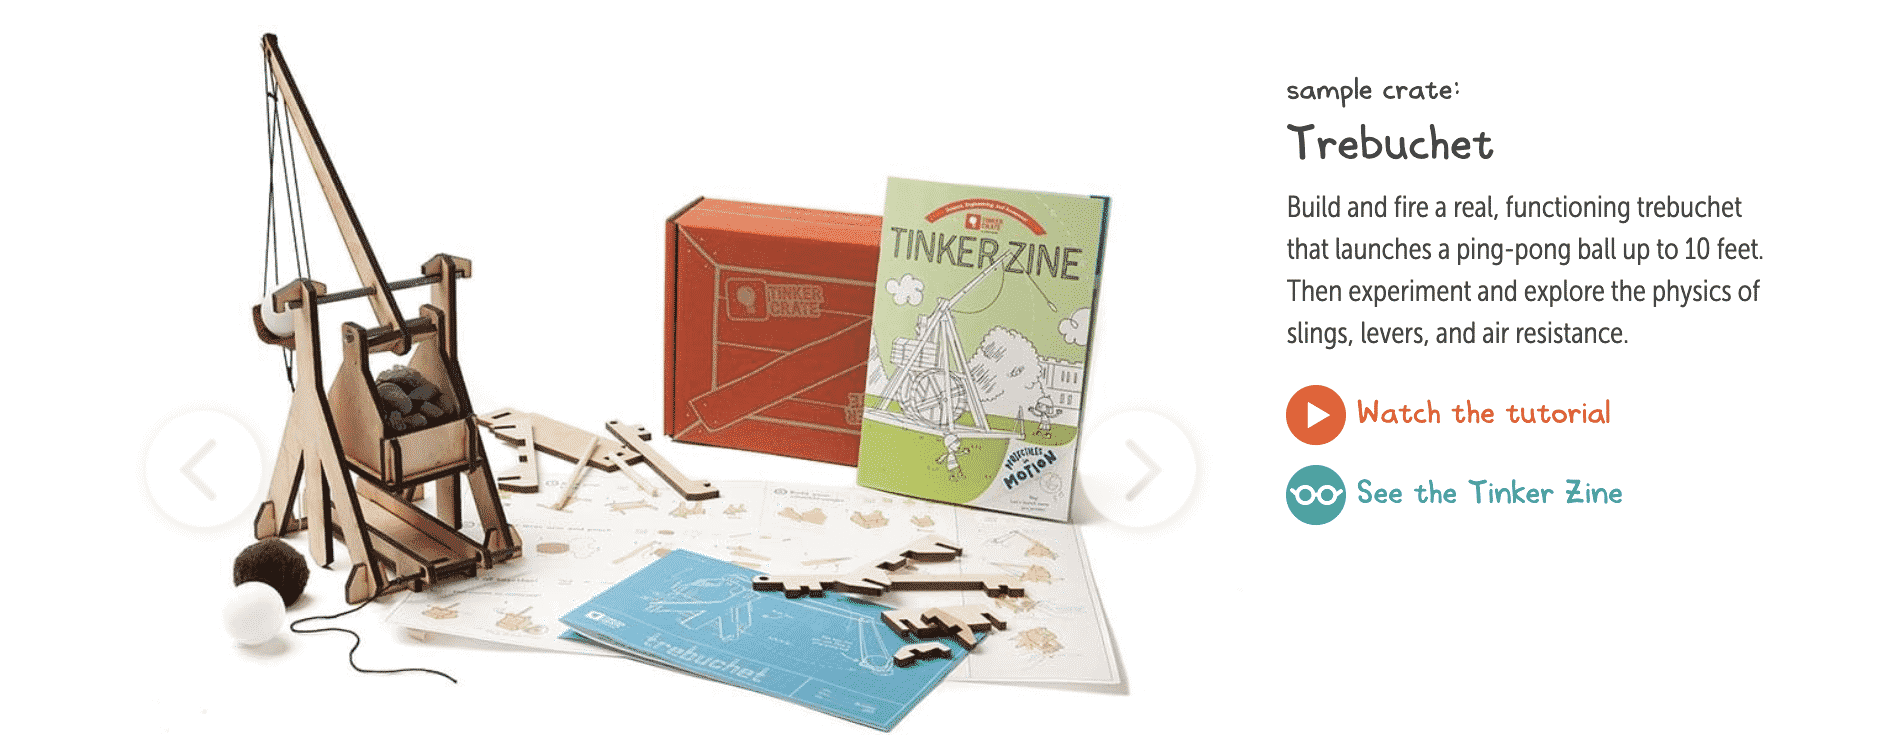 Tinker Crate from KiwiCo